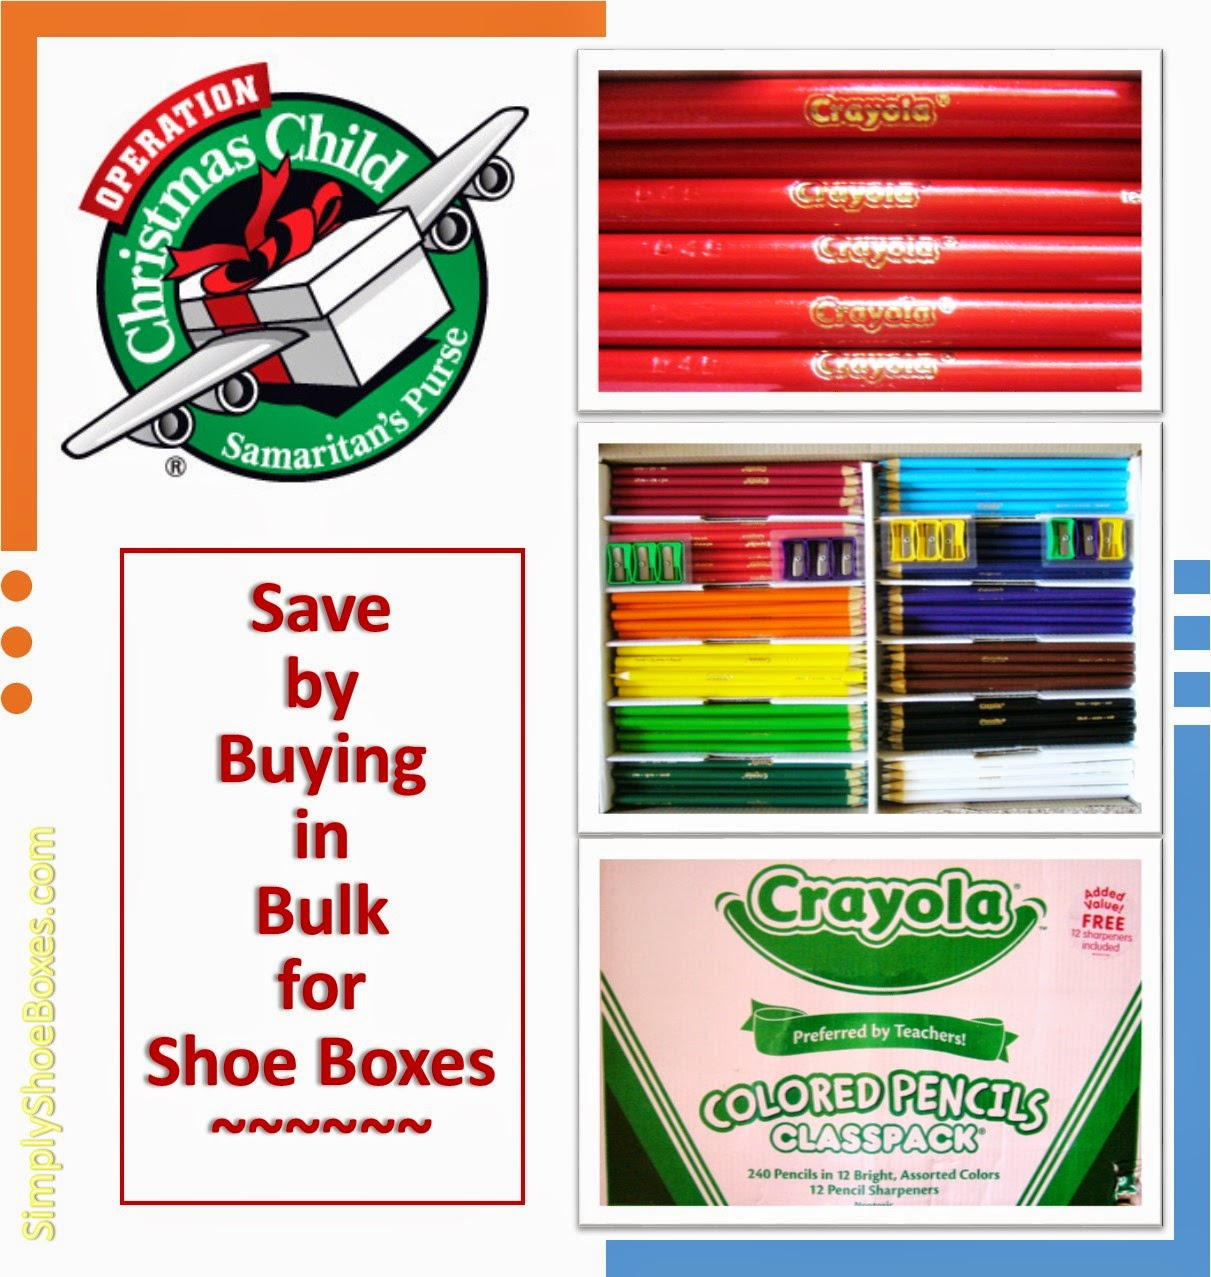 save money by buying in bulk for operation christmas child shoe box gifts